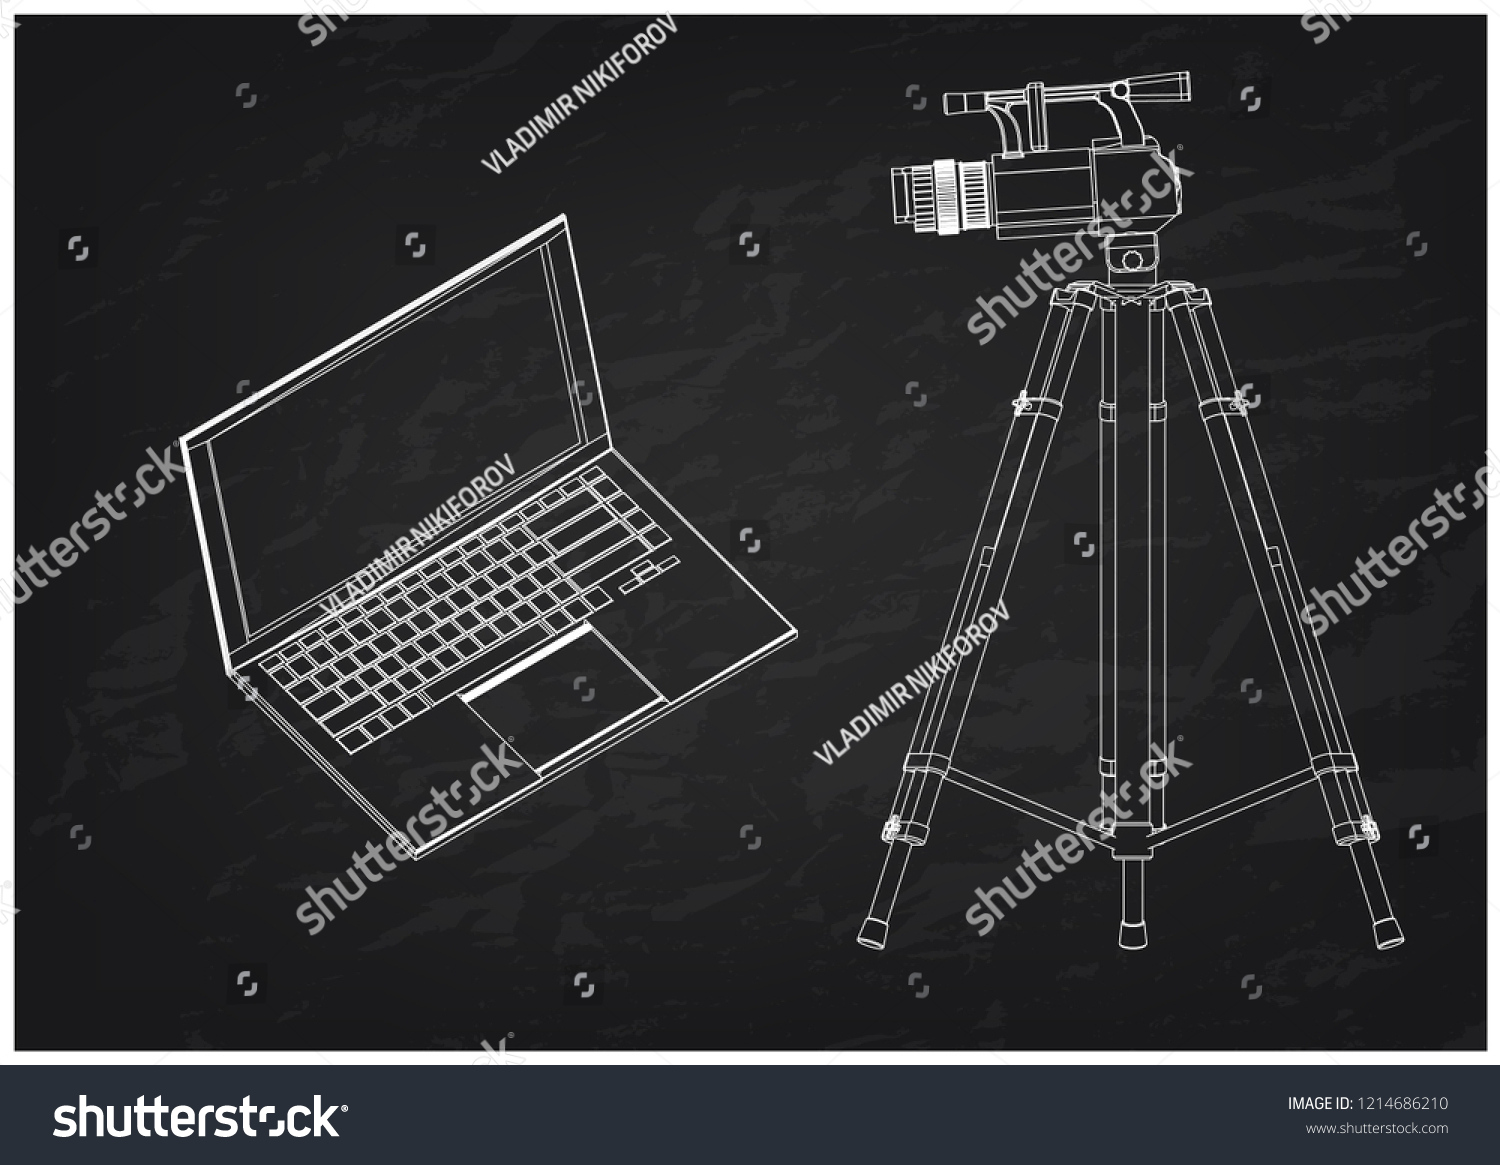 hight resolution of camcorder laptop diagram simple wiring diagram dell inspiron laptop diagram camcorder laptop diagram